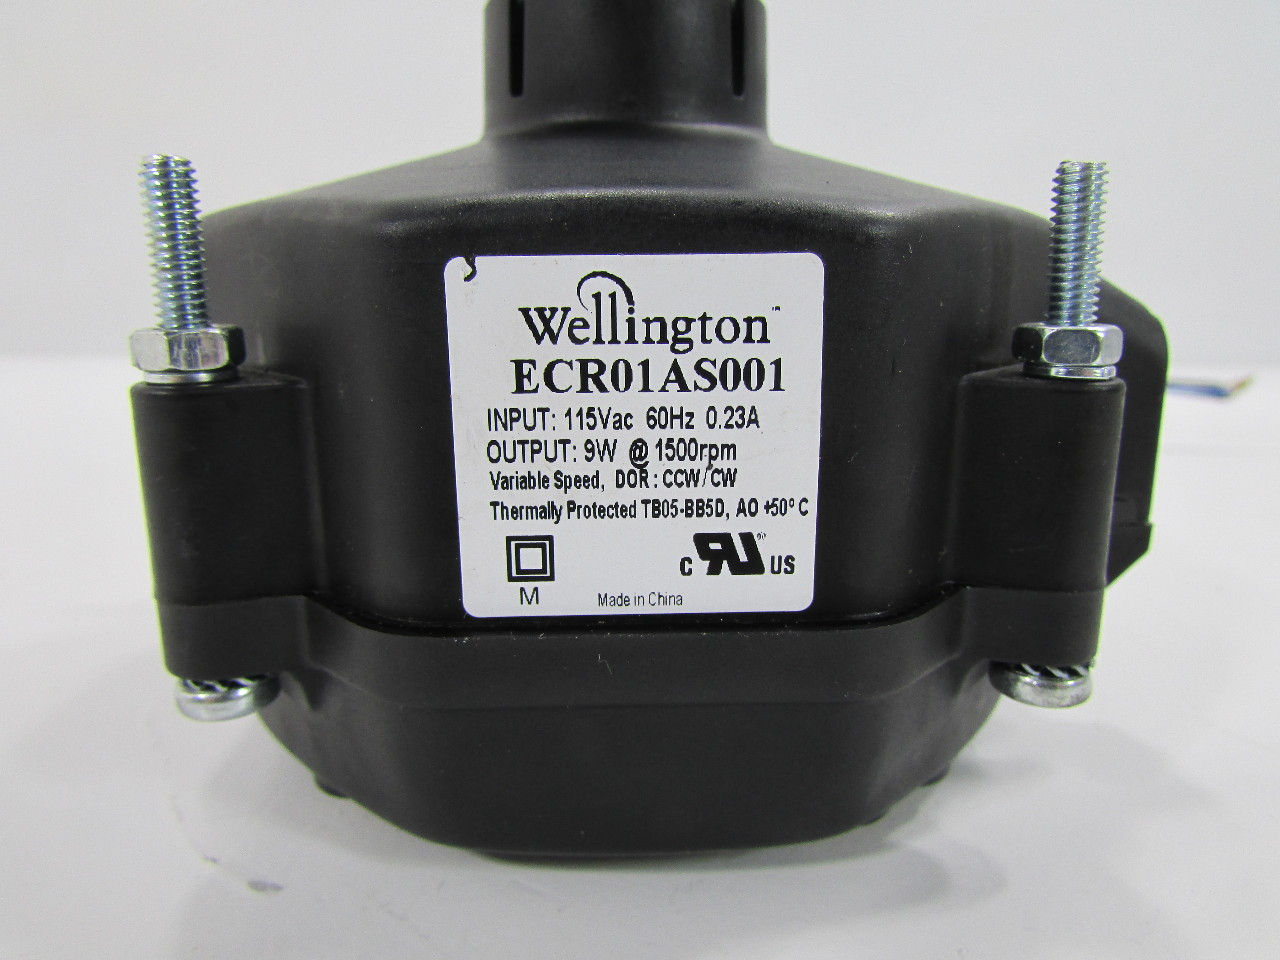 Wellington Refrigeration Fan Motor Ecr01as001 115v60 Hz 9w